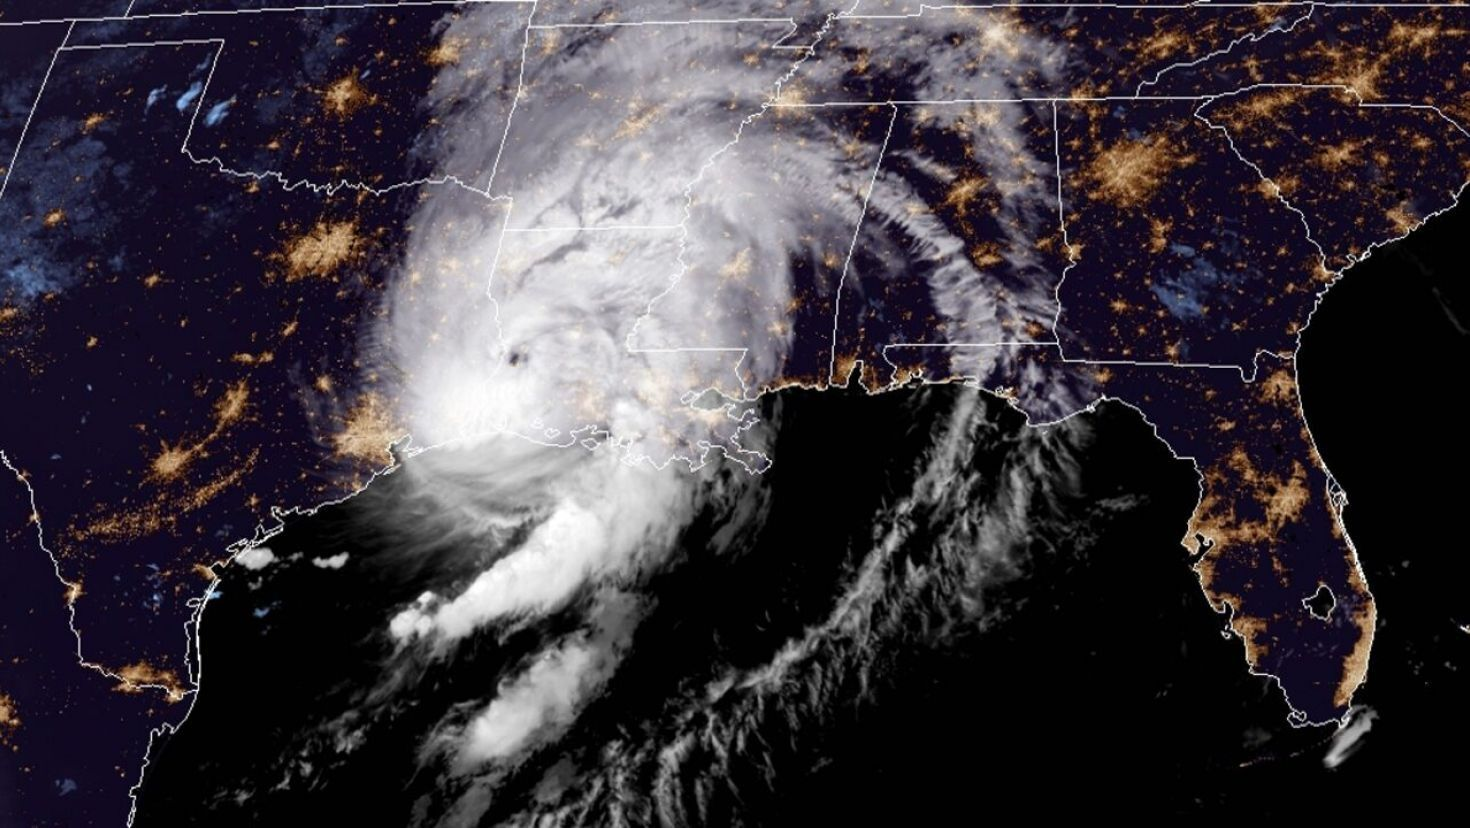 Hurricane Laura Brings Tornado Threat After Louisiana Landfall Lake Charles Severely Damaged In 2020 Storm Surge Lake Charles Threat